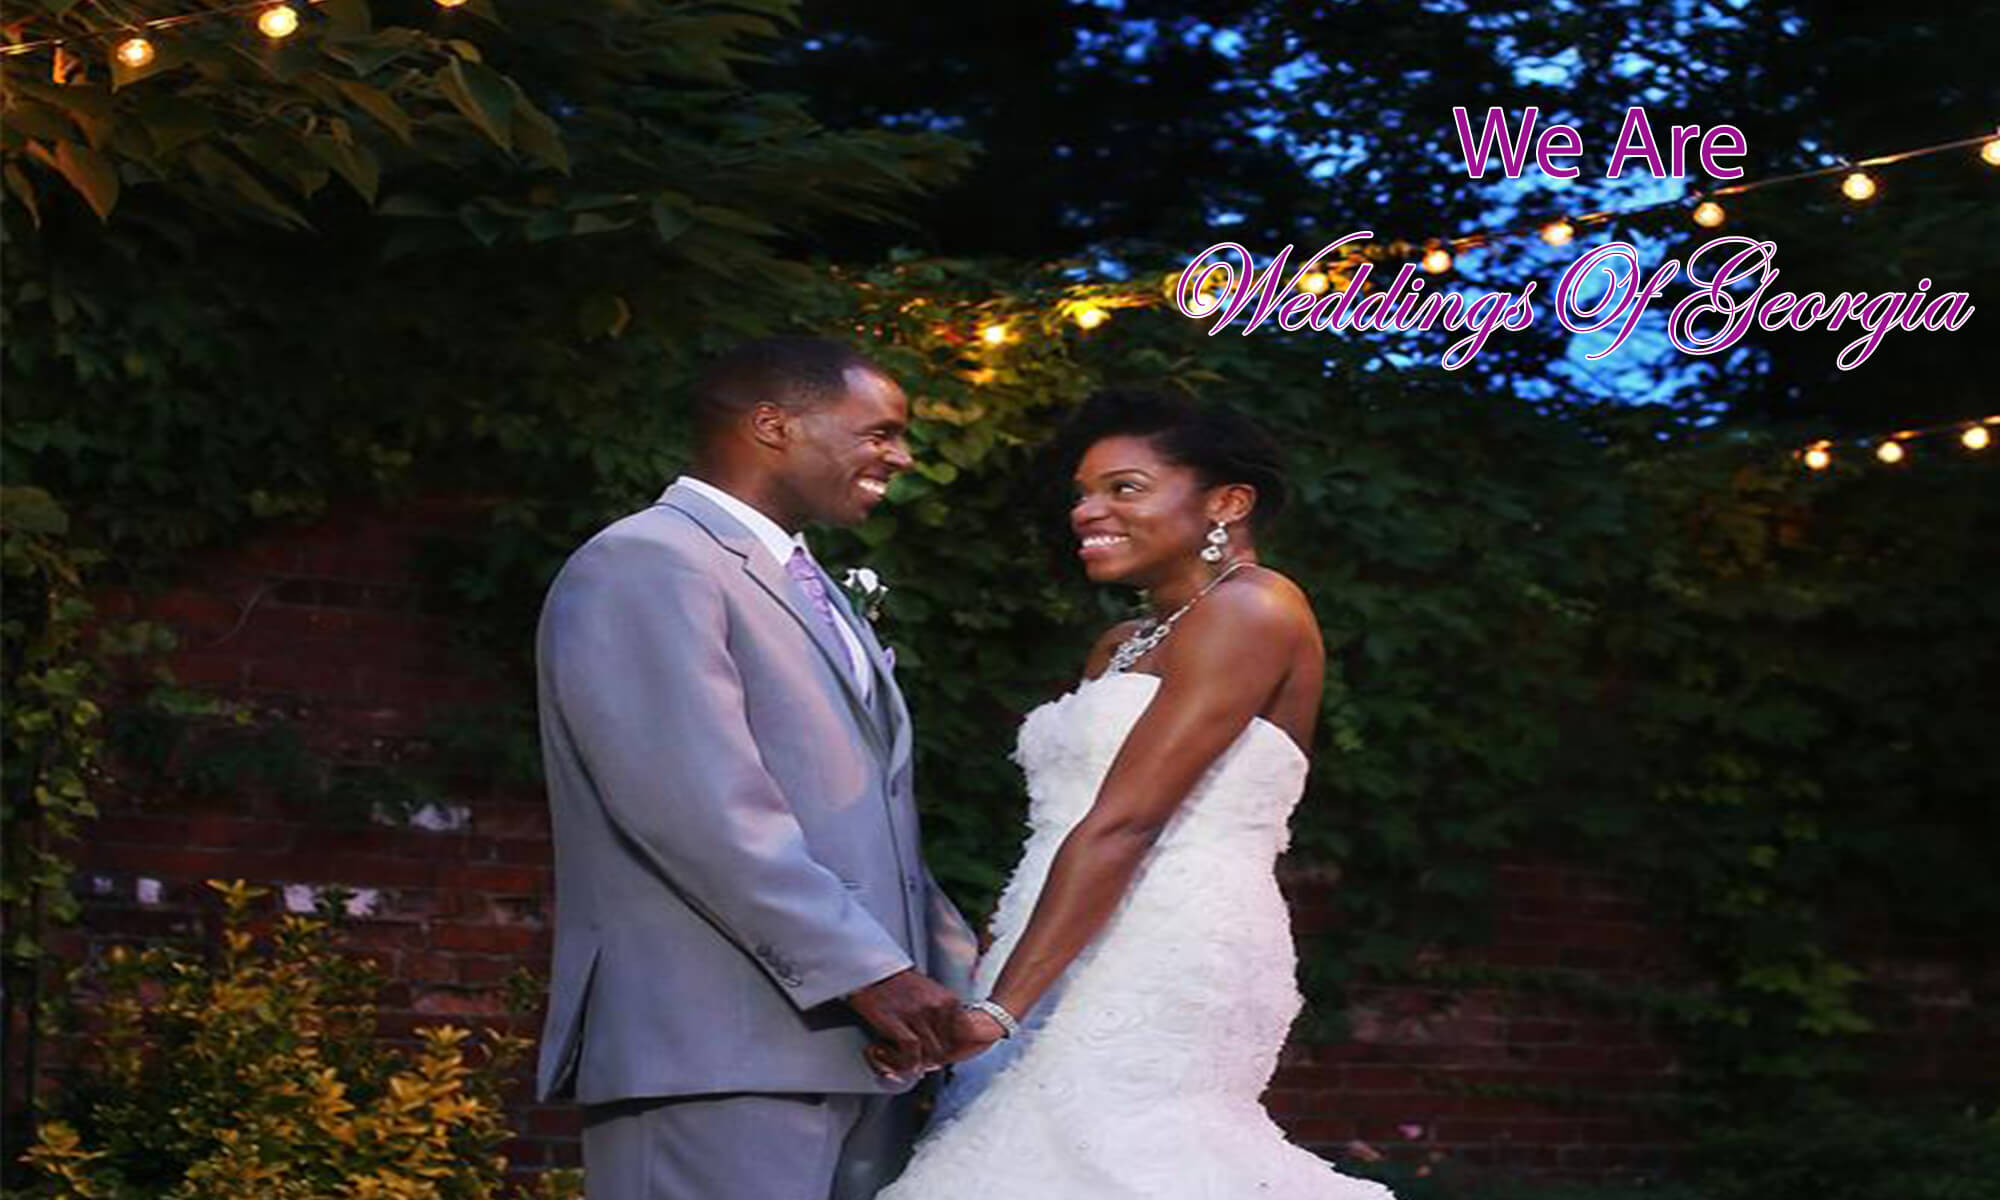 Weddings Of Georgia Magazine